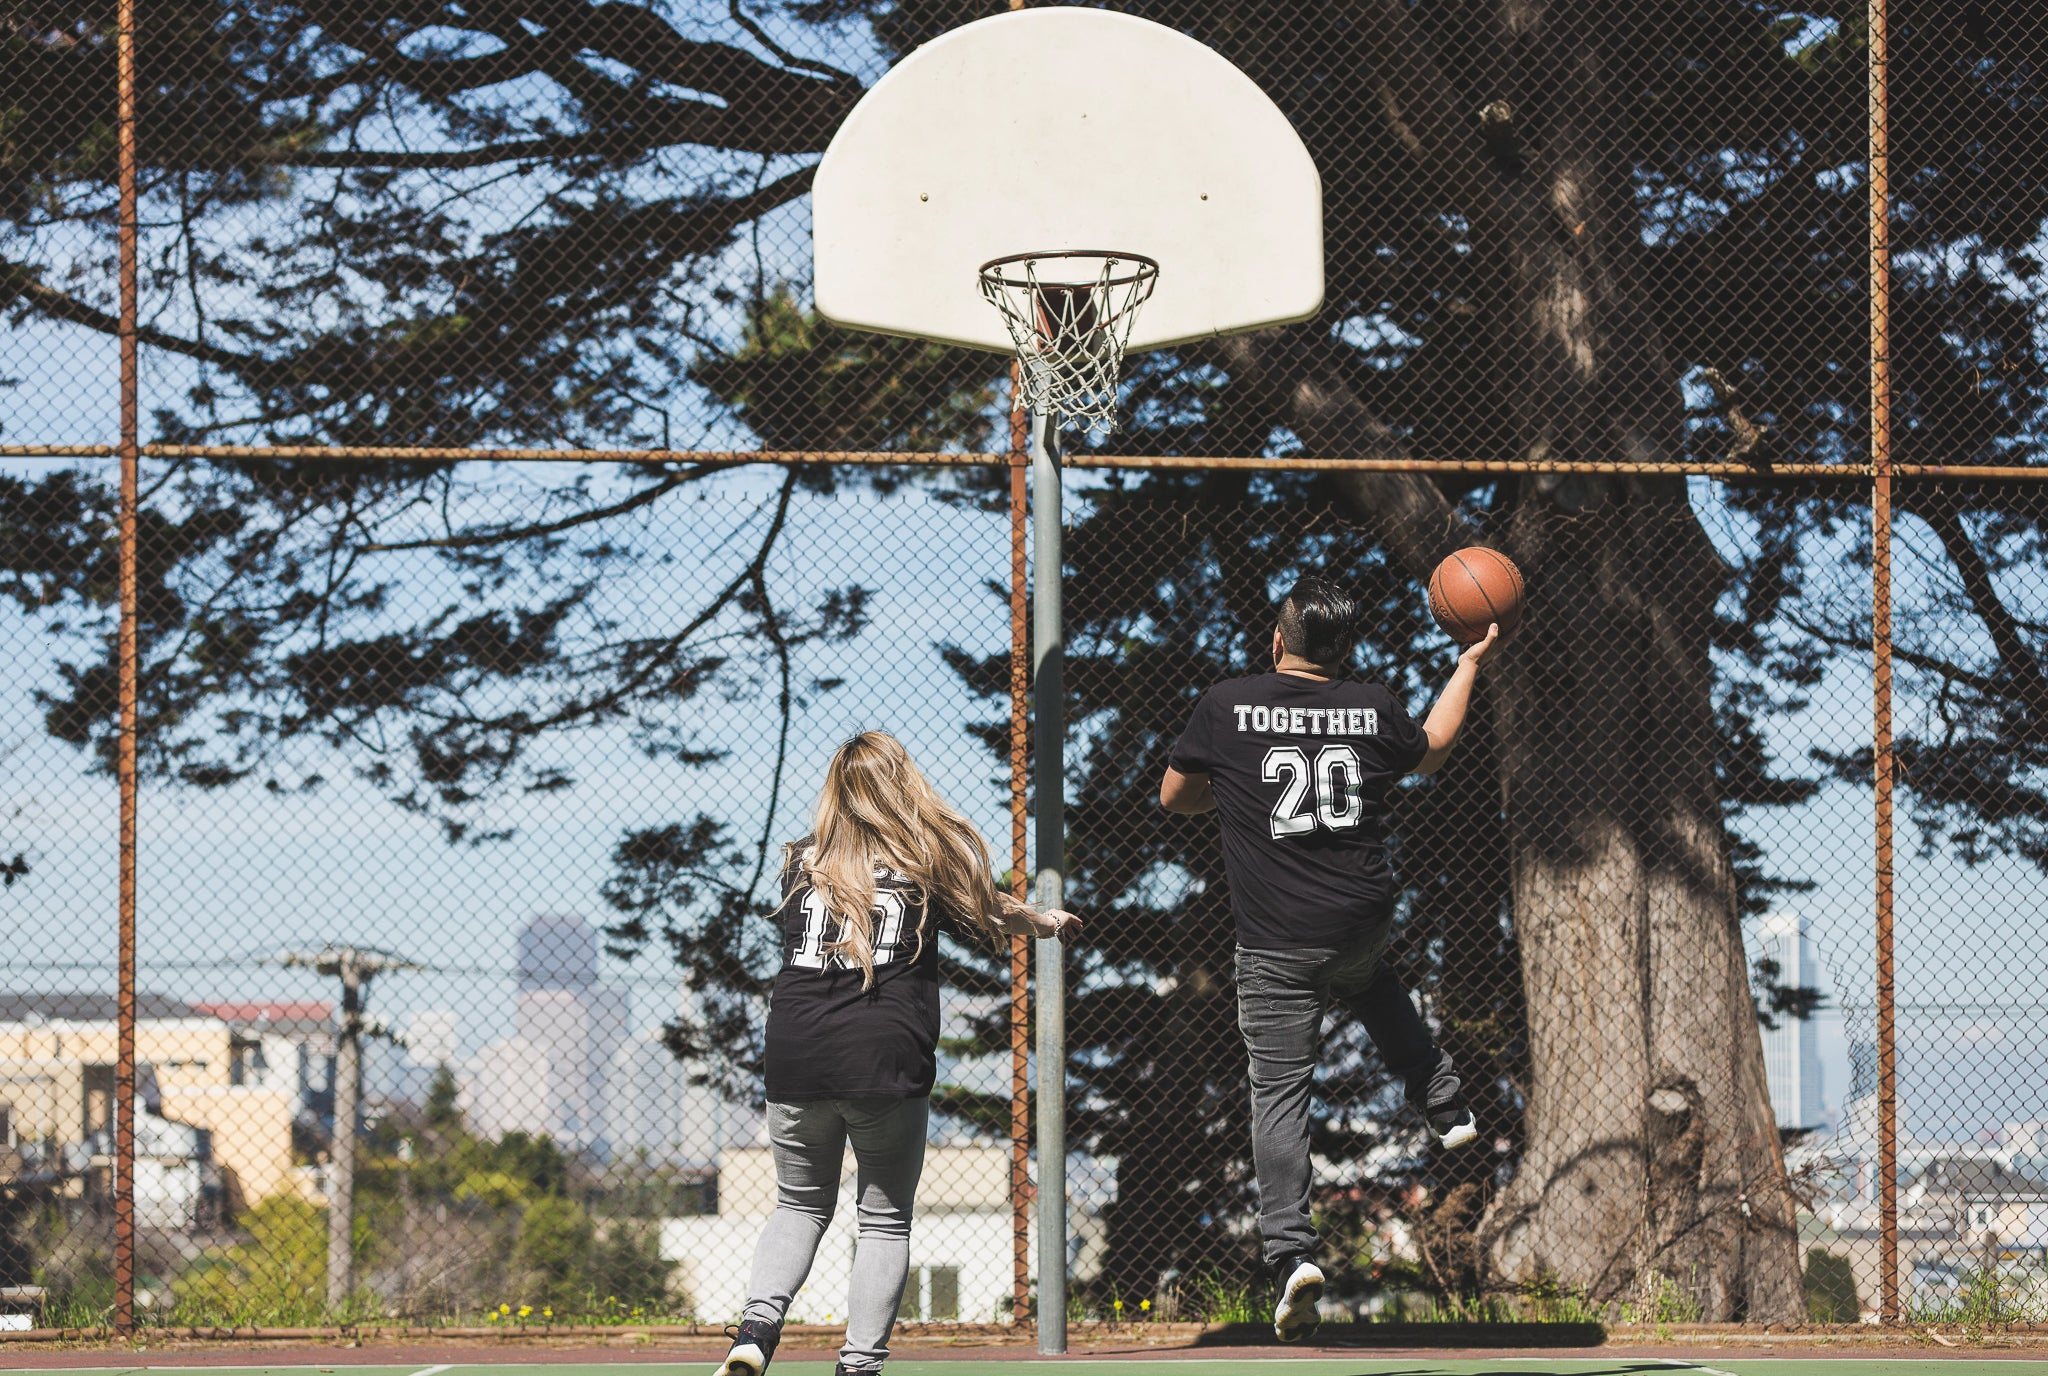 SAN FRANCISCO, CA | Those who Play Together Stay Together